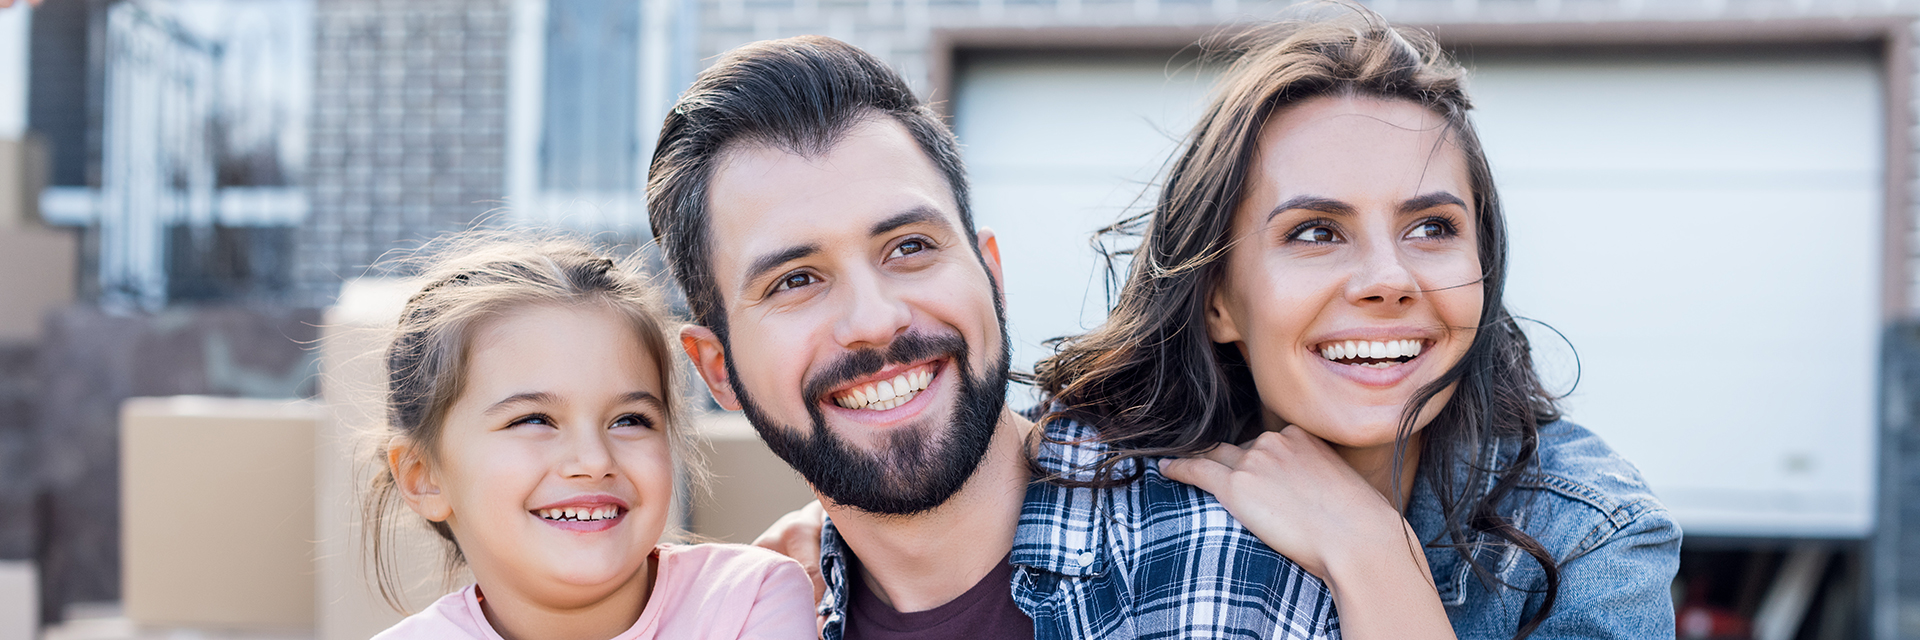 Dr. Andrew Edmonds offers complete family and cosmetic dentistry